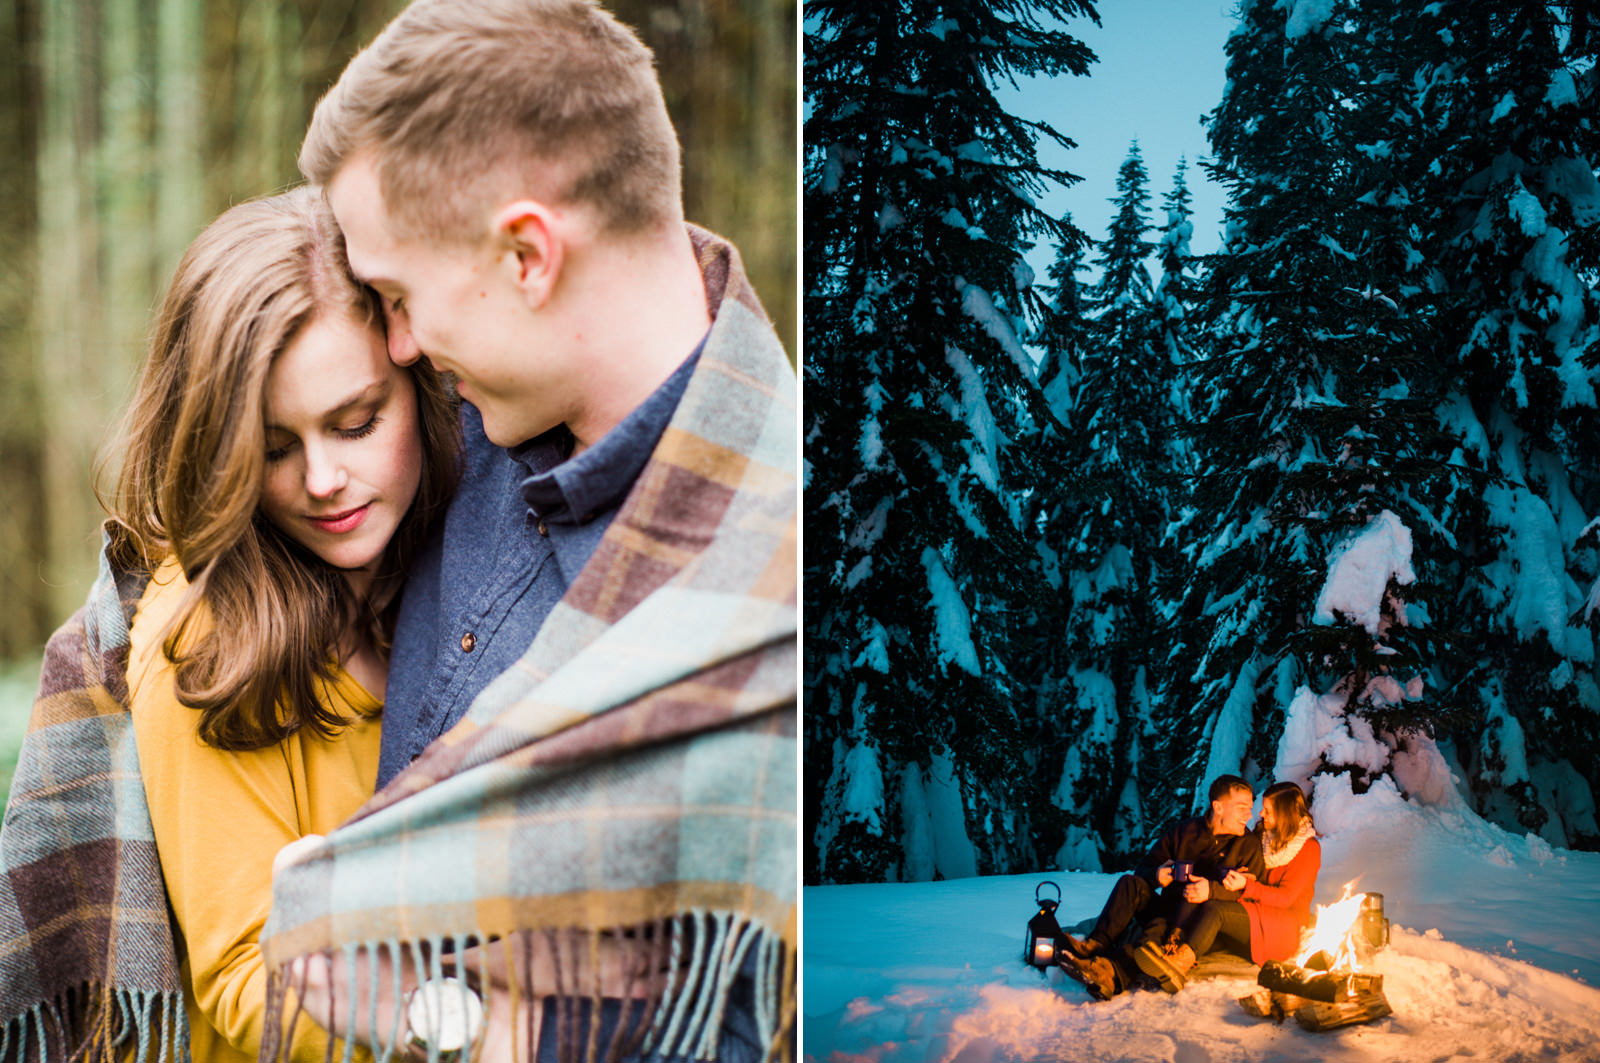 090-winter-engagement-shoot-in-the-snow-with-a-bonfire-by-ryan-flynn-photography.jpg